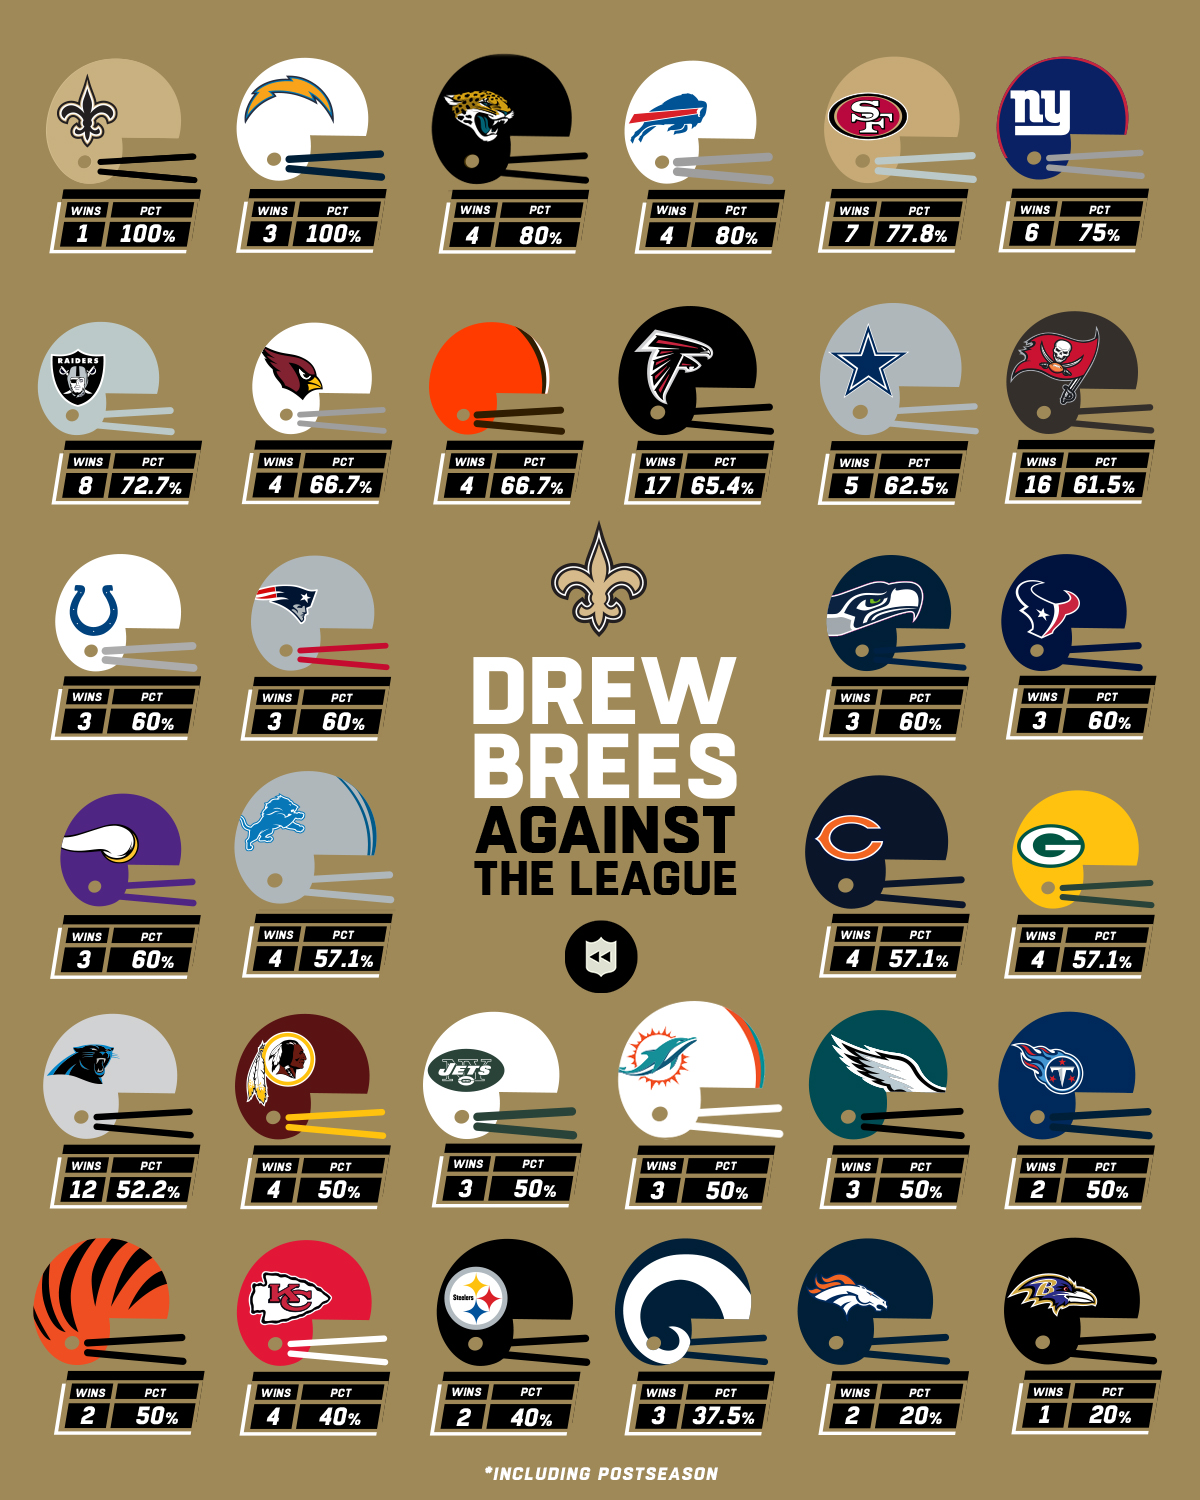 181019Drew_Brees_AgainstTheLeaguev4.jpg